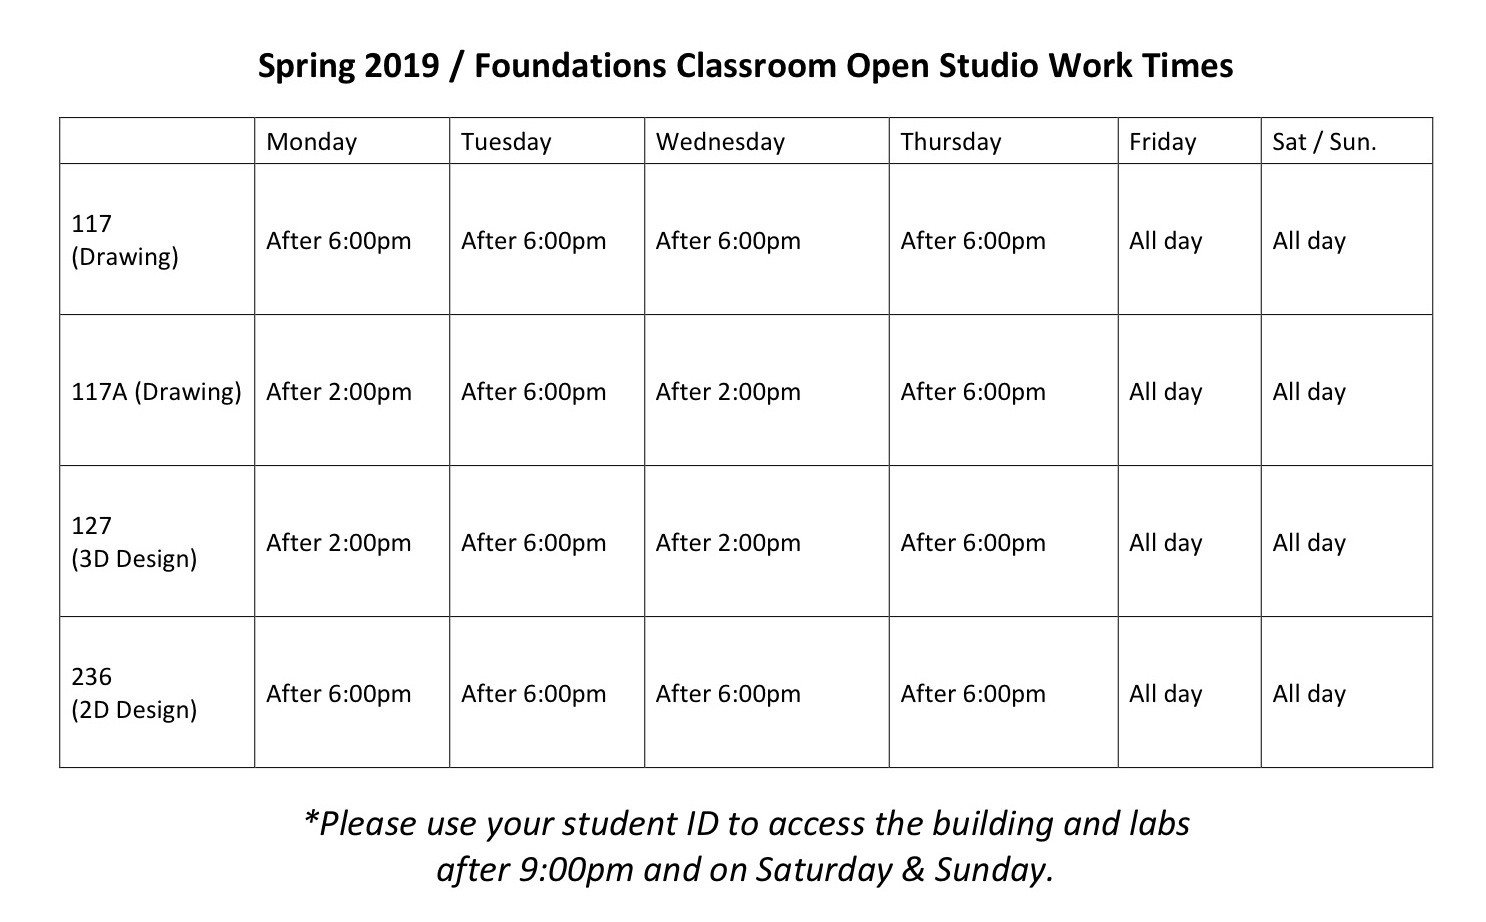 Spring 2019 Foundations Classroom Access